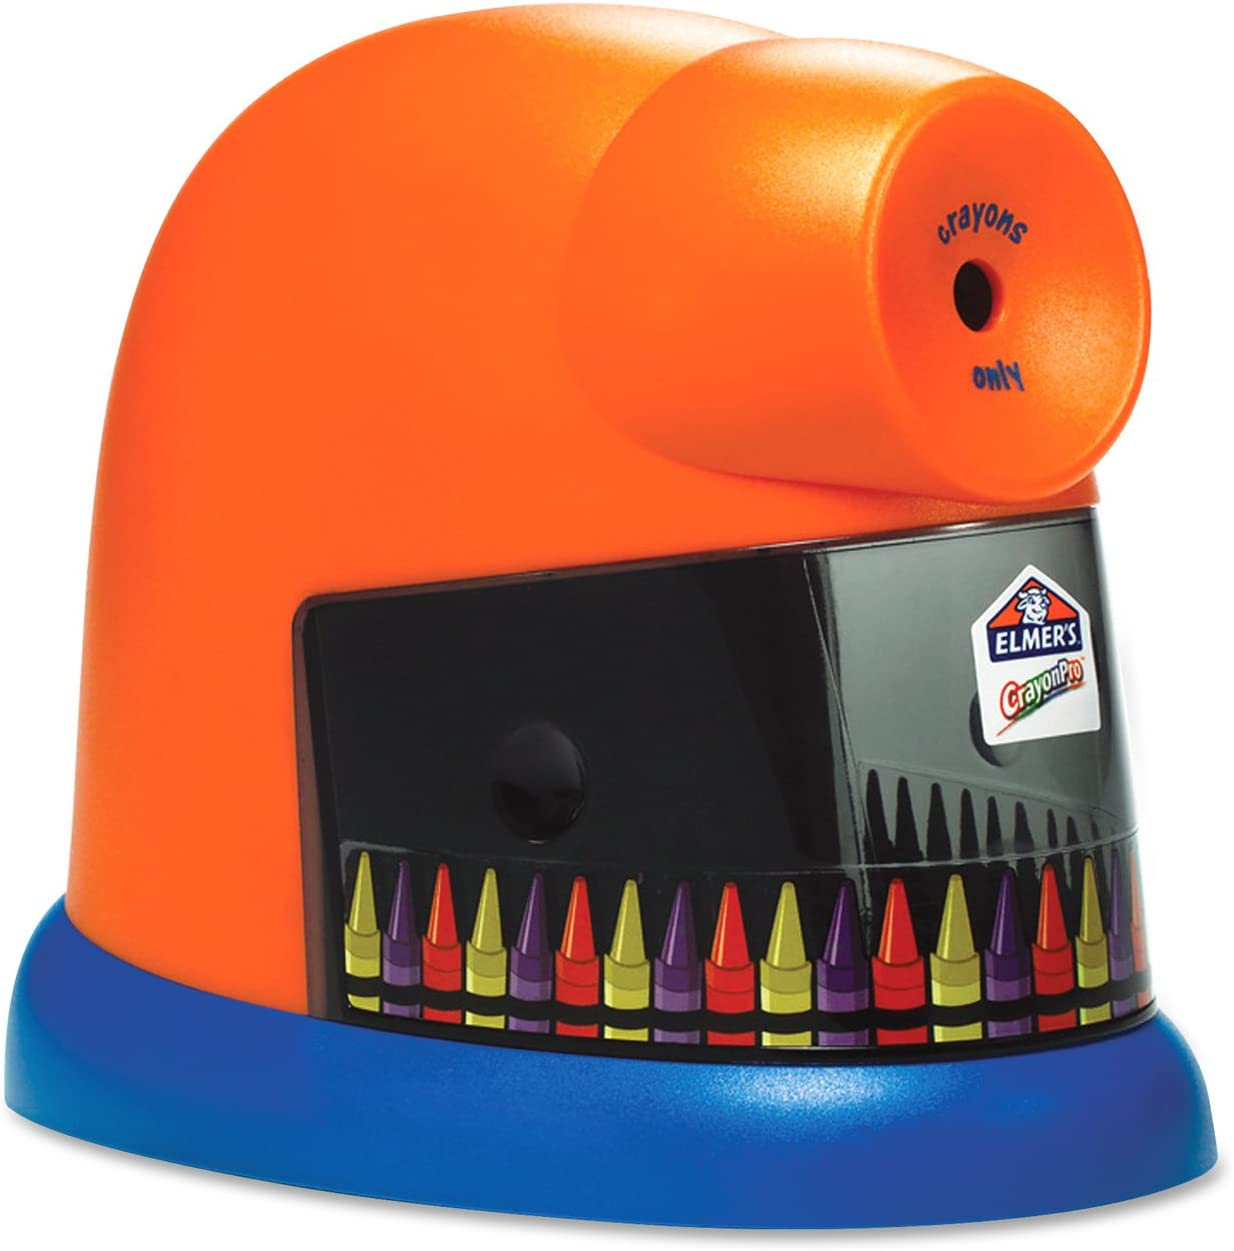 Elmer's 1680 CrayonPro Electric Sharpener : Pencil Sharpeners : Office Products